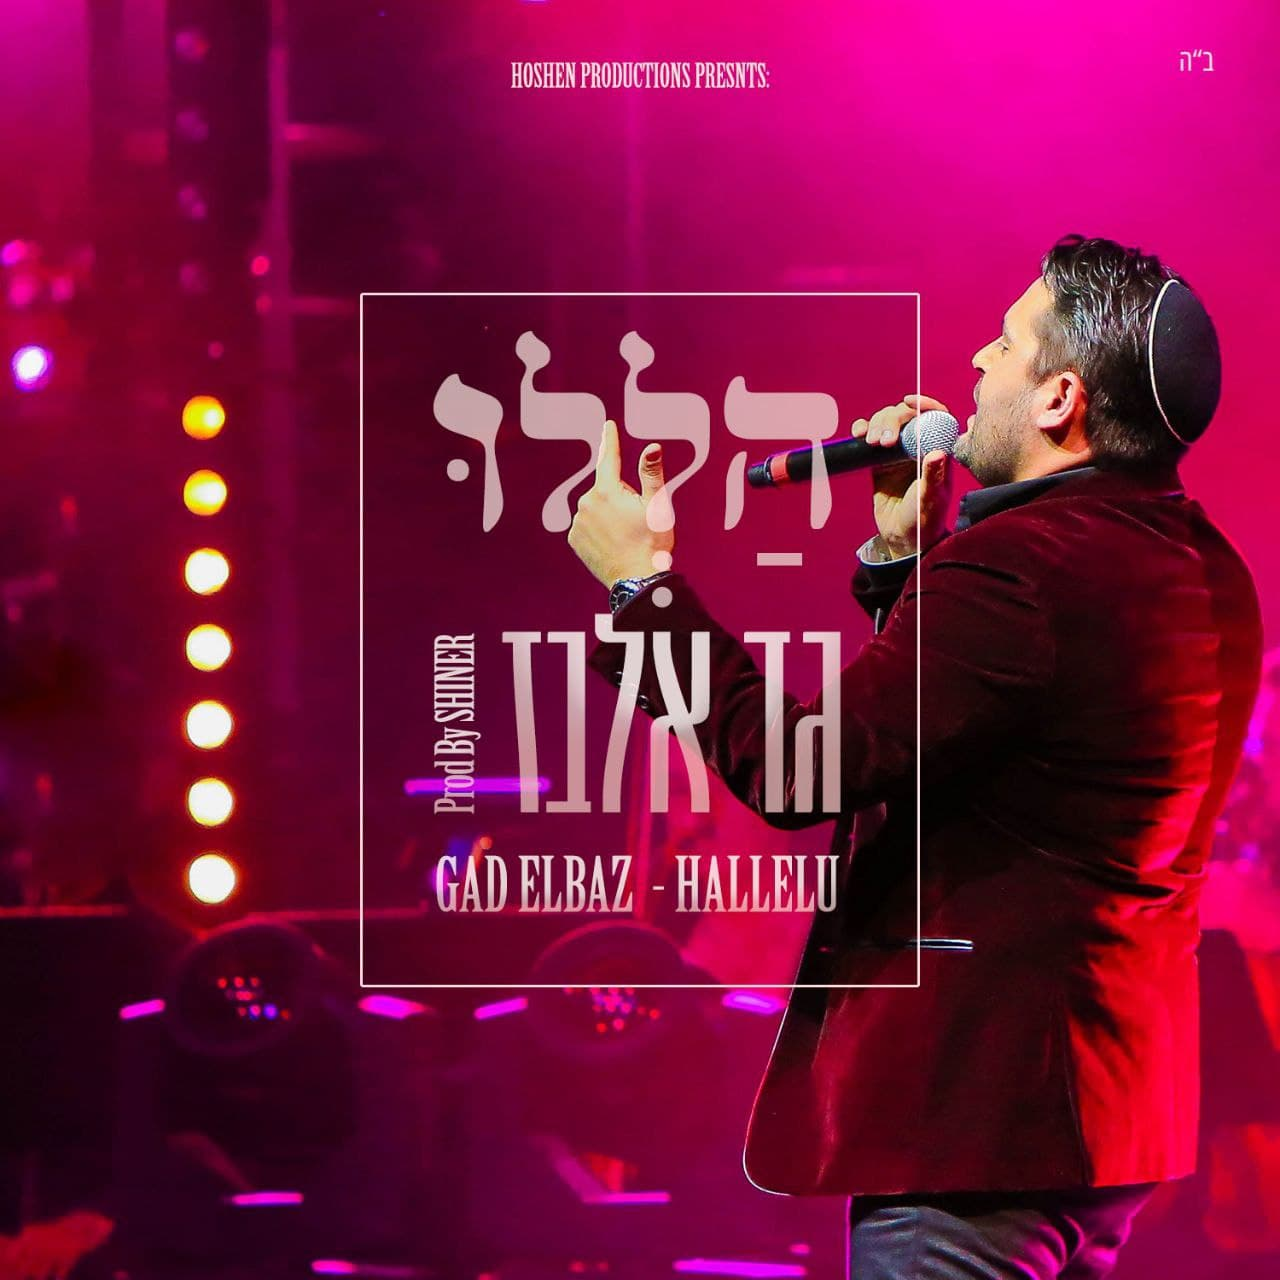 Gad Elbaz - Hallelu (Single)